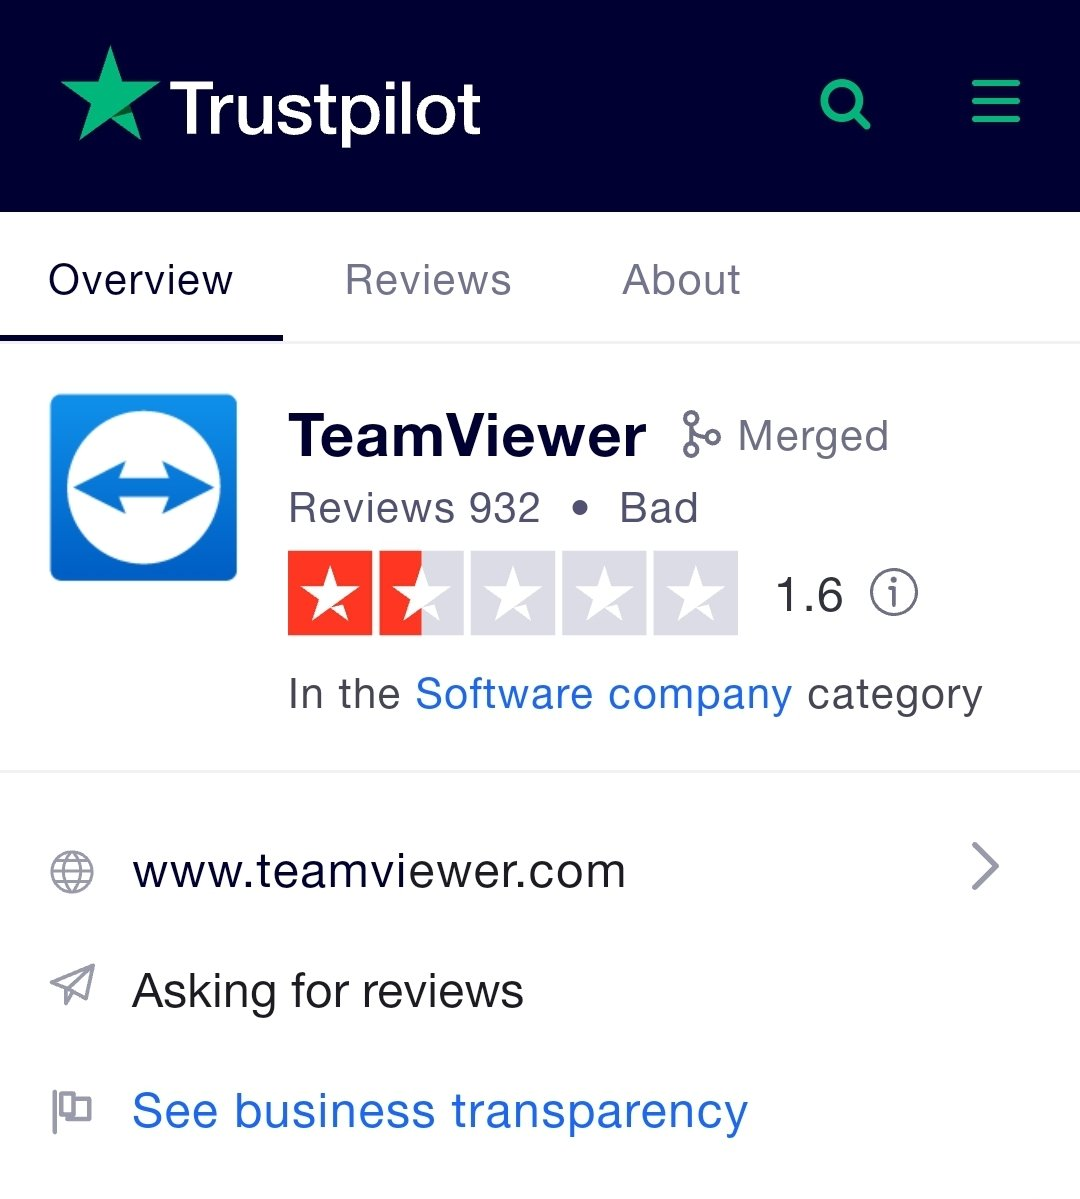 @TeamViewer @joemckendrick @RTInsights Imagine putting your pc and devices into the hands of Teamviewer...  #NotAPennyMore #TeamviewerBlog https://t.co/eiZvYrV1k7